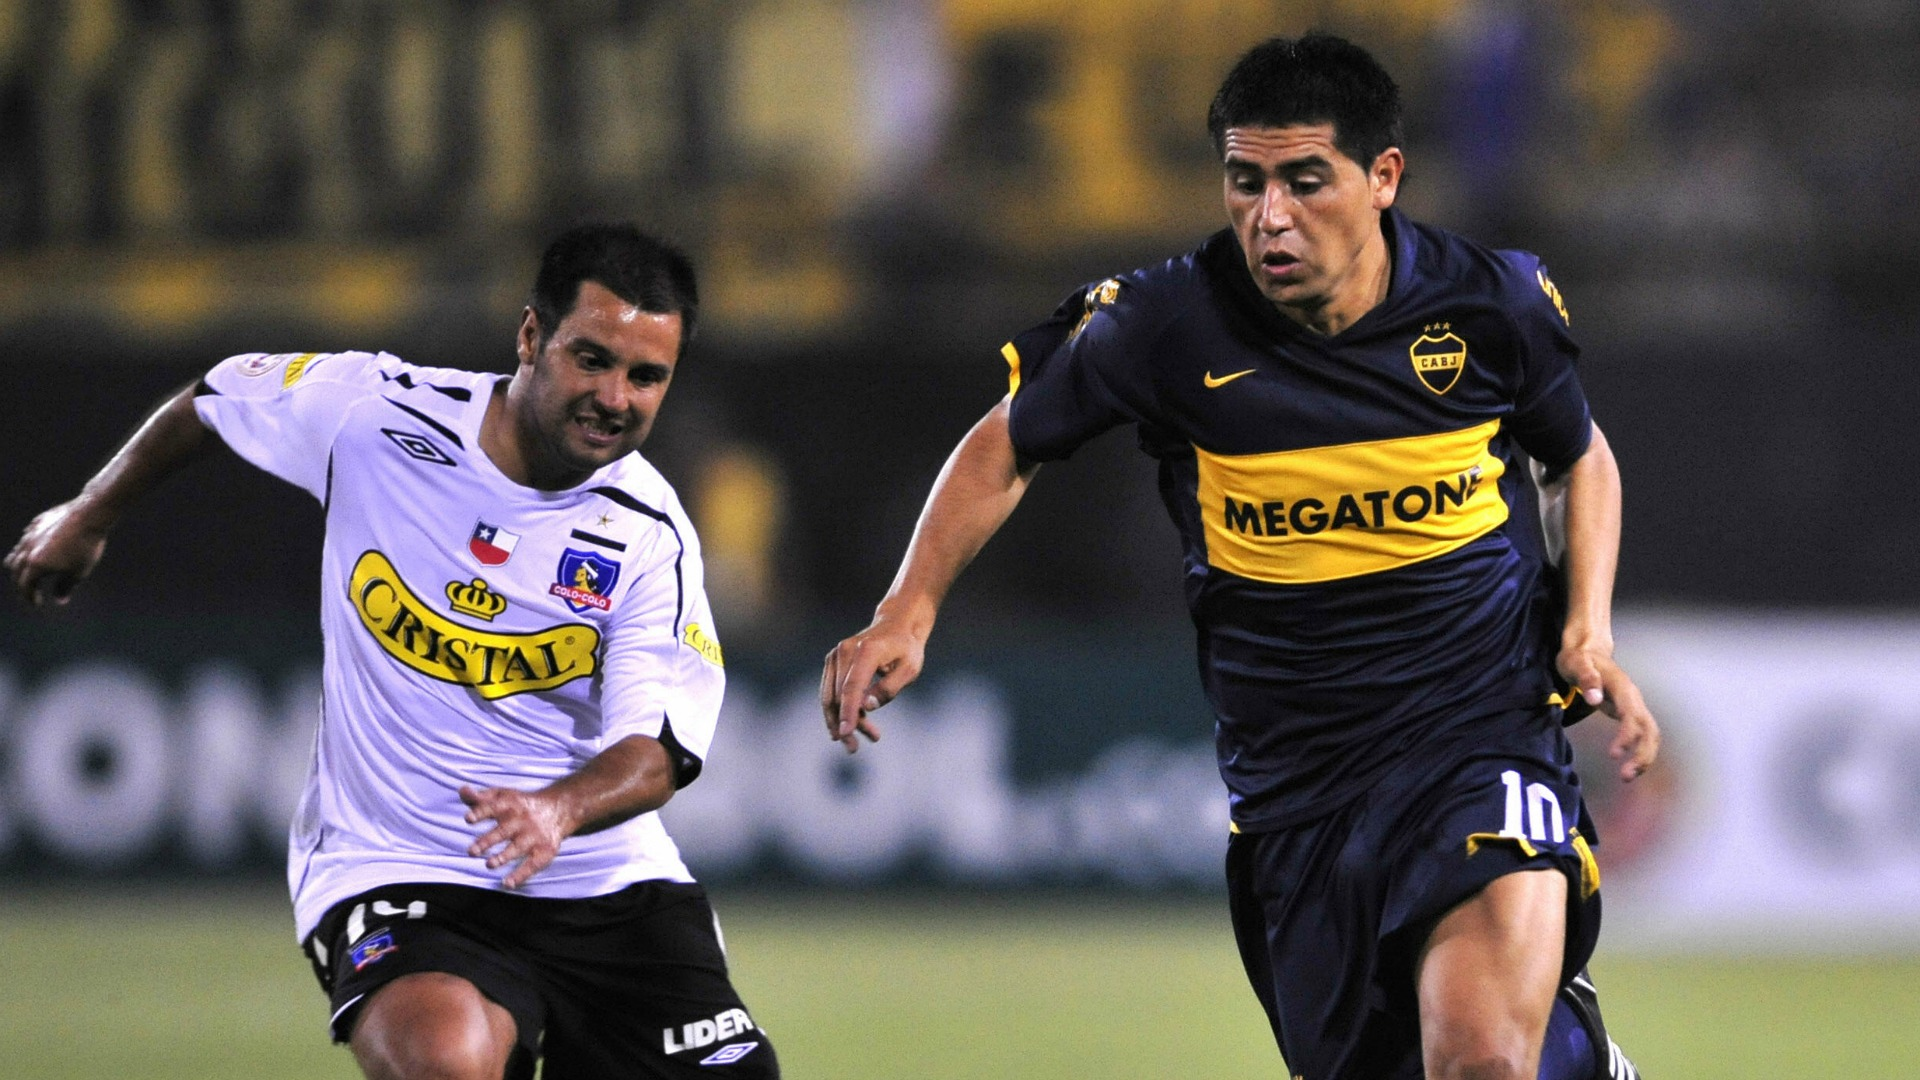 https://images.performgroup.com/di/library/GOAL/35/d4/colo-colo-boca_14zf2rauzc7ng1vfxuuvzgho3t.jpg